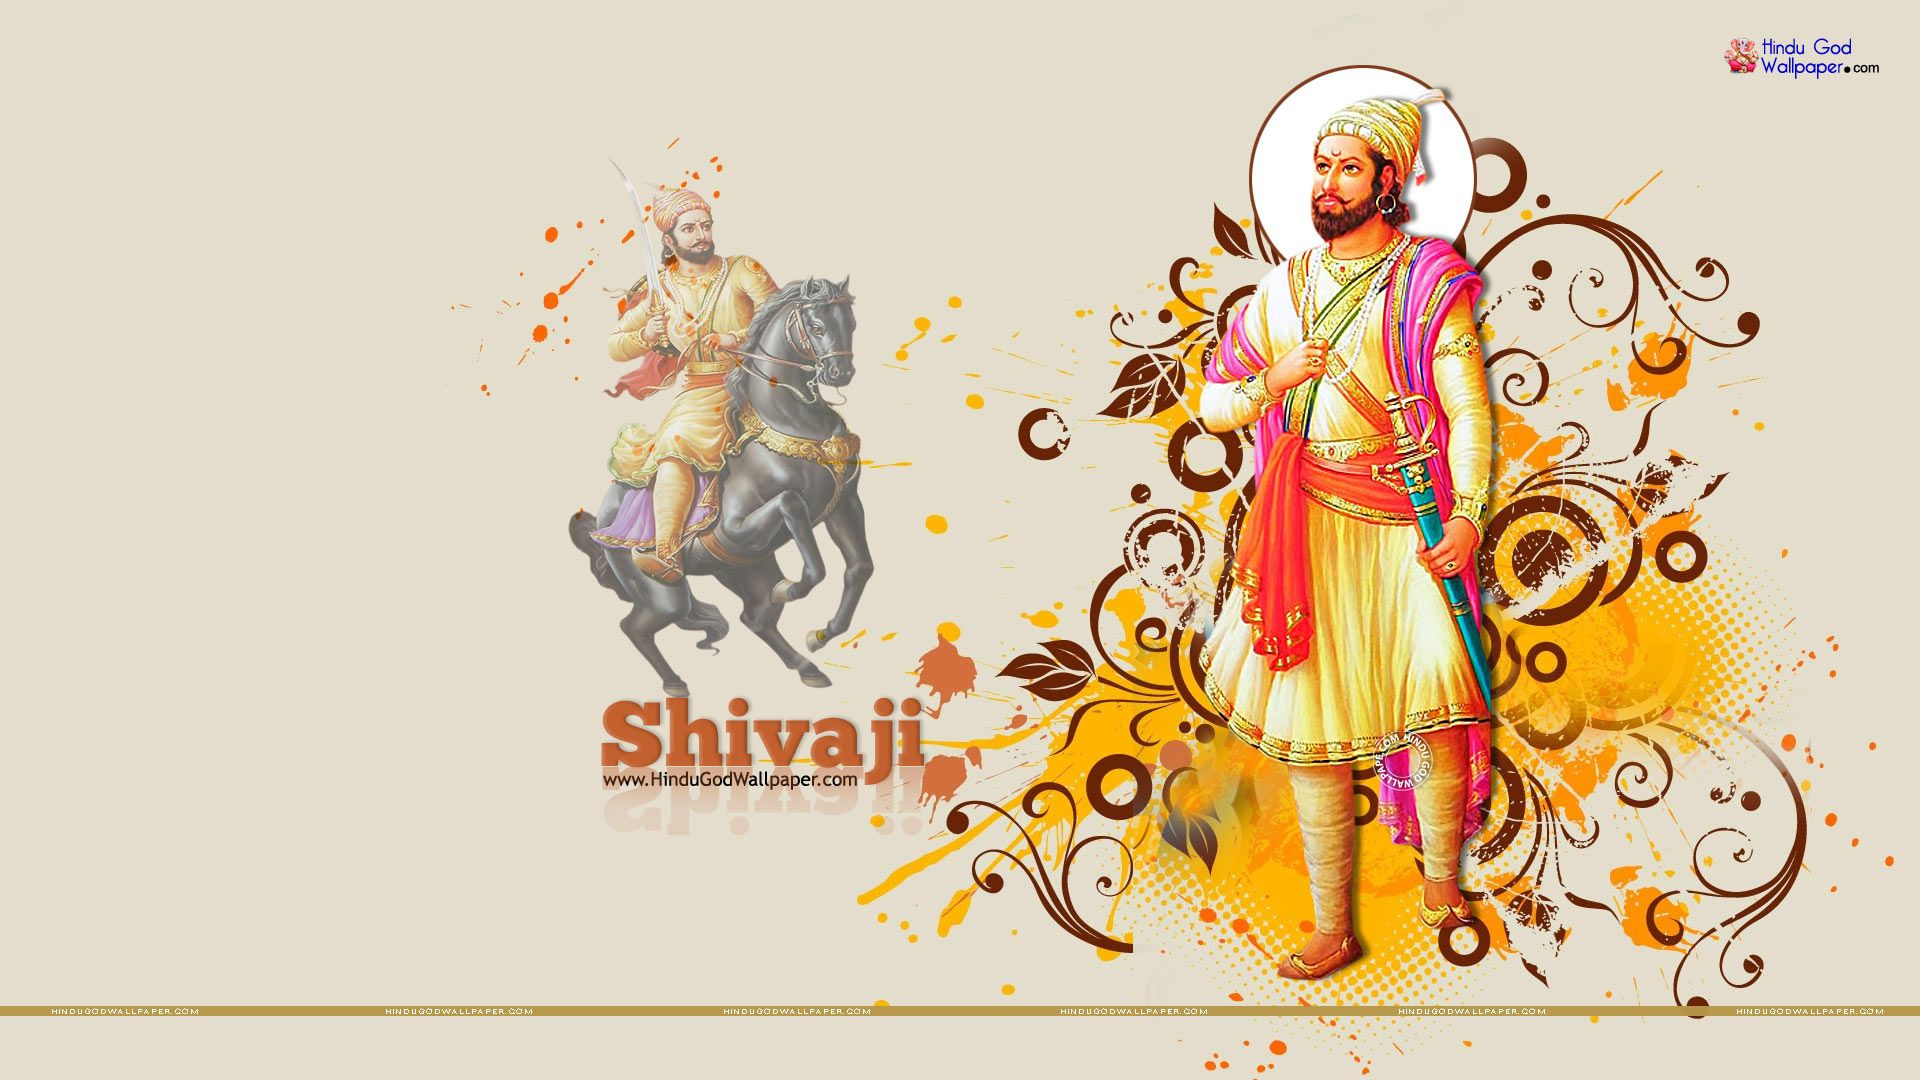 Hd wallpaper shivaji maharaj - Shivaji Maharaj Wallpaper High Resolution 1080p Hd